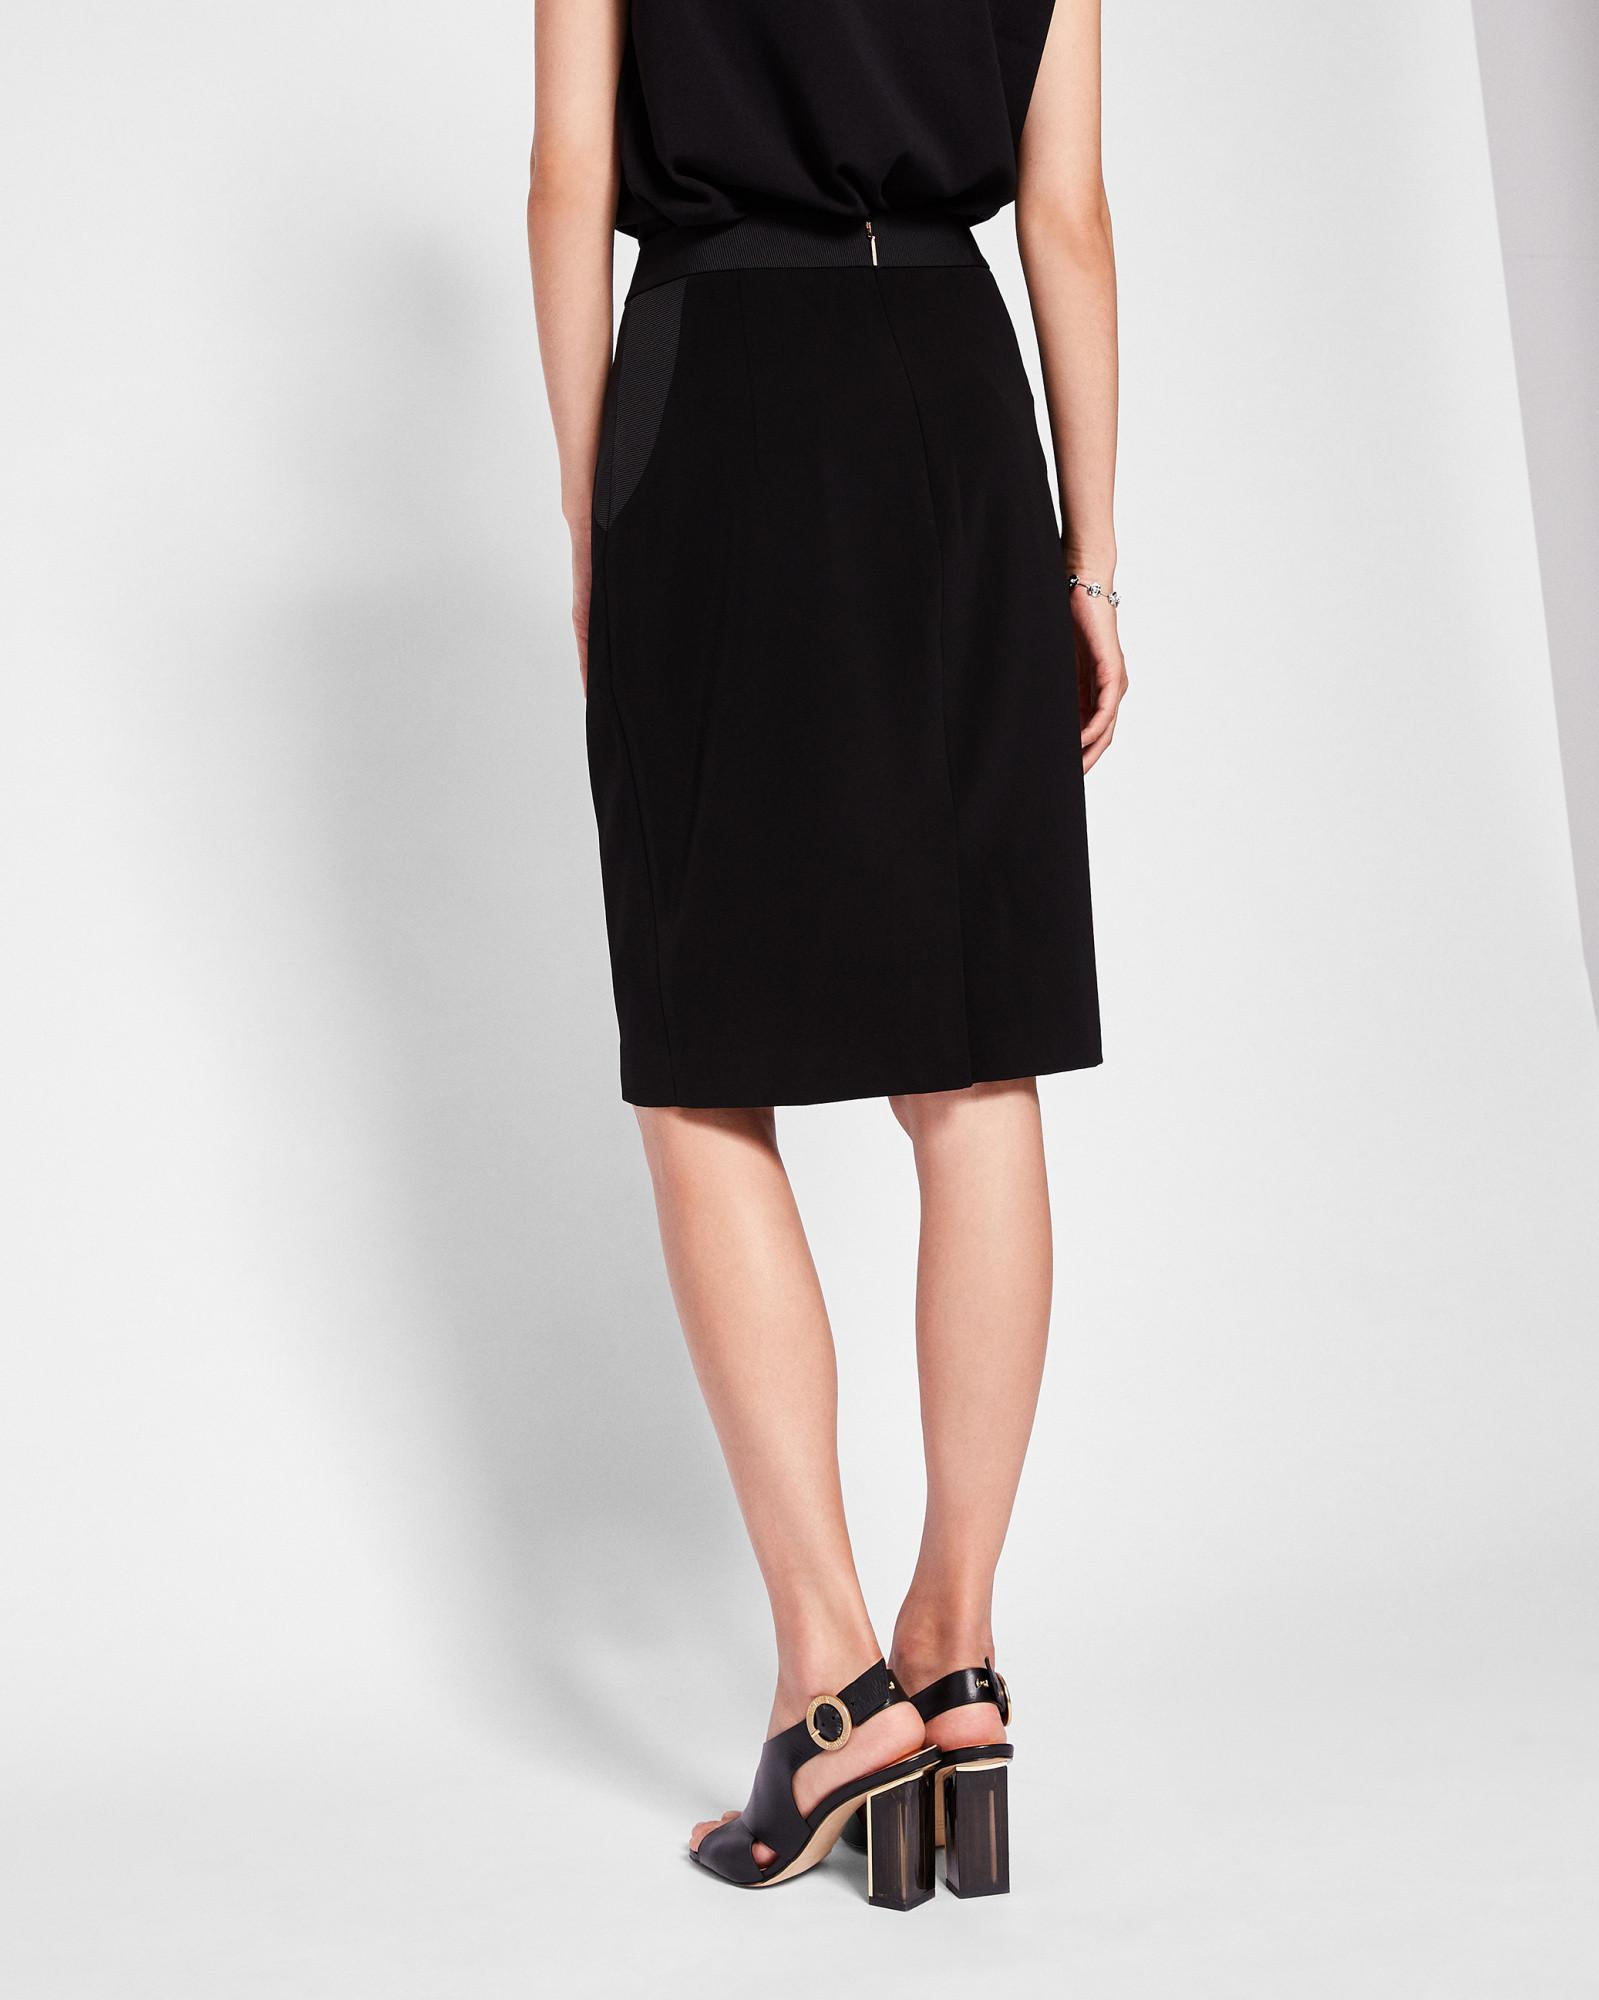 99b437c3d9fafb Lyst - Ted Baker Ottoman Contrast Pencil Skirt in Black